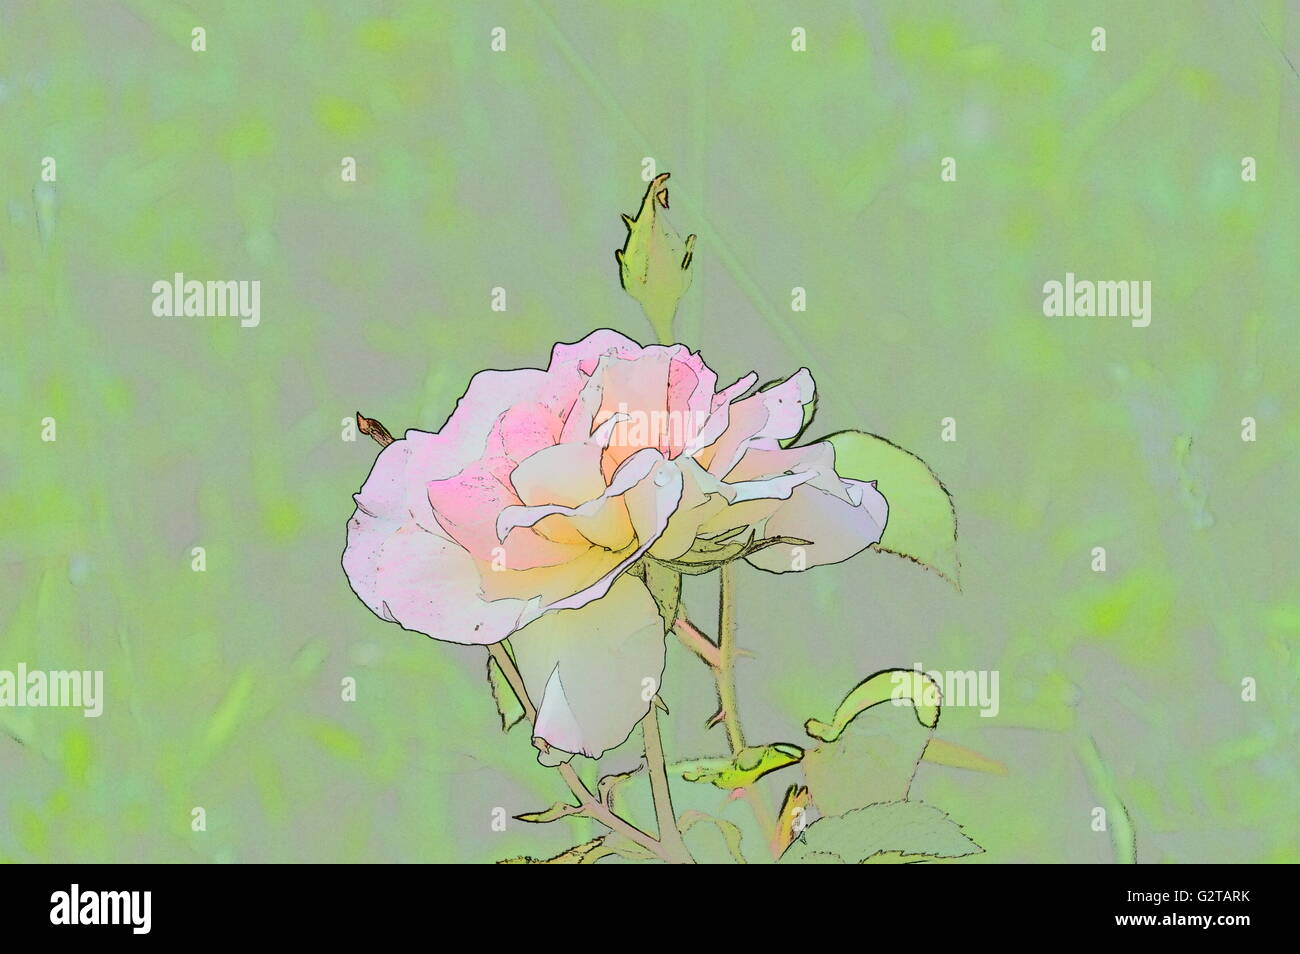 Digital art color sketch flowers Stock Photo